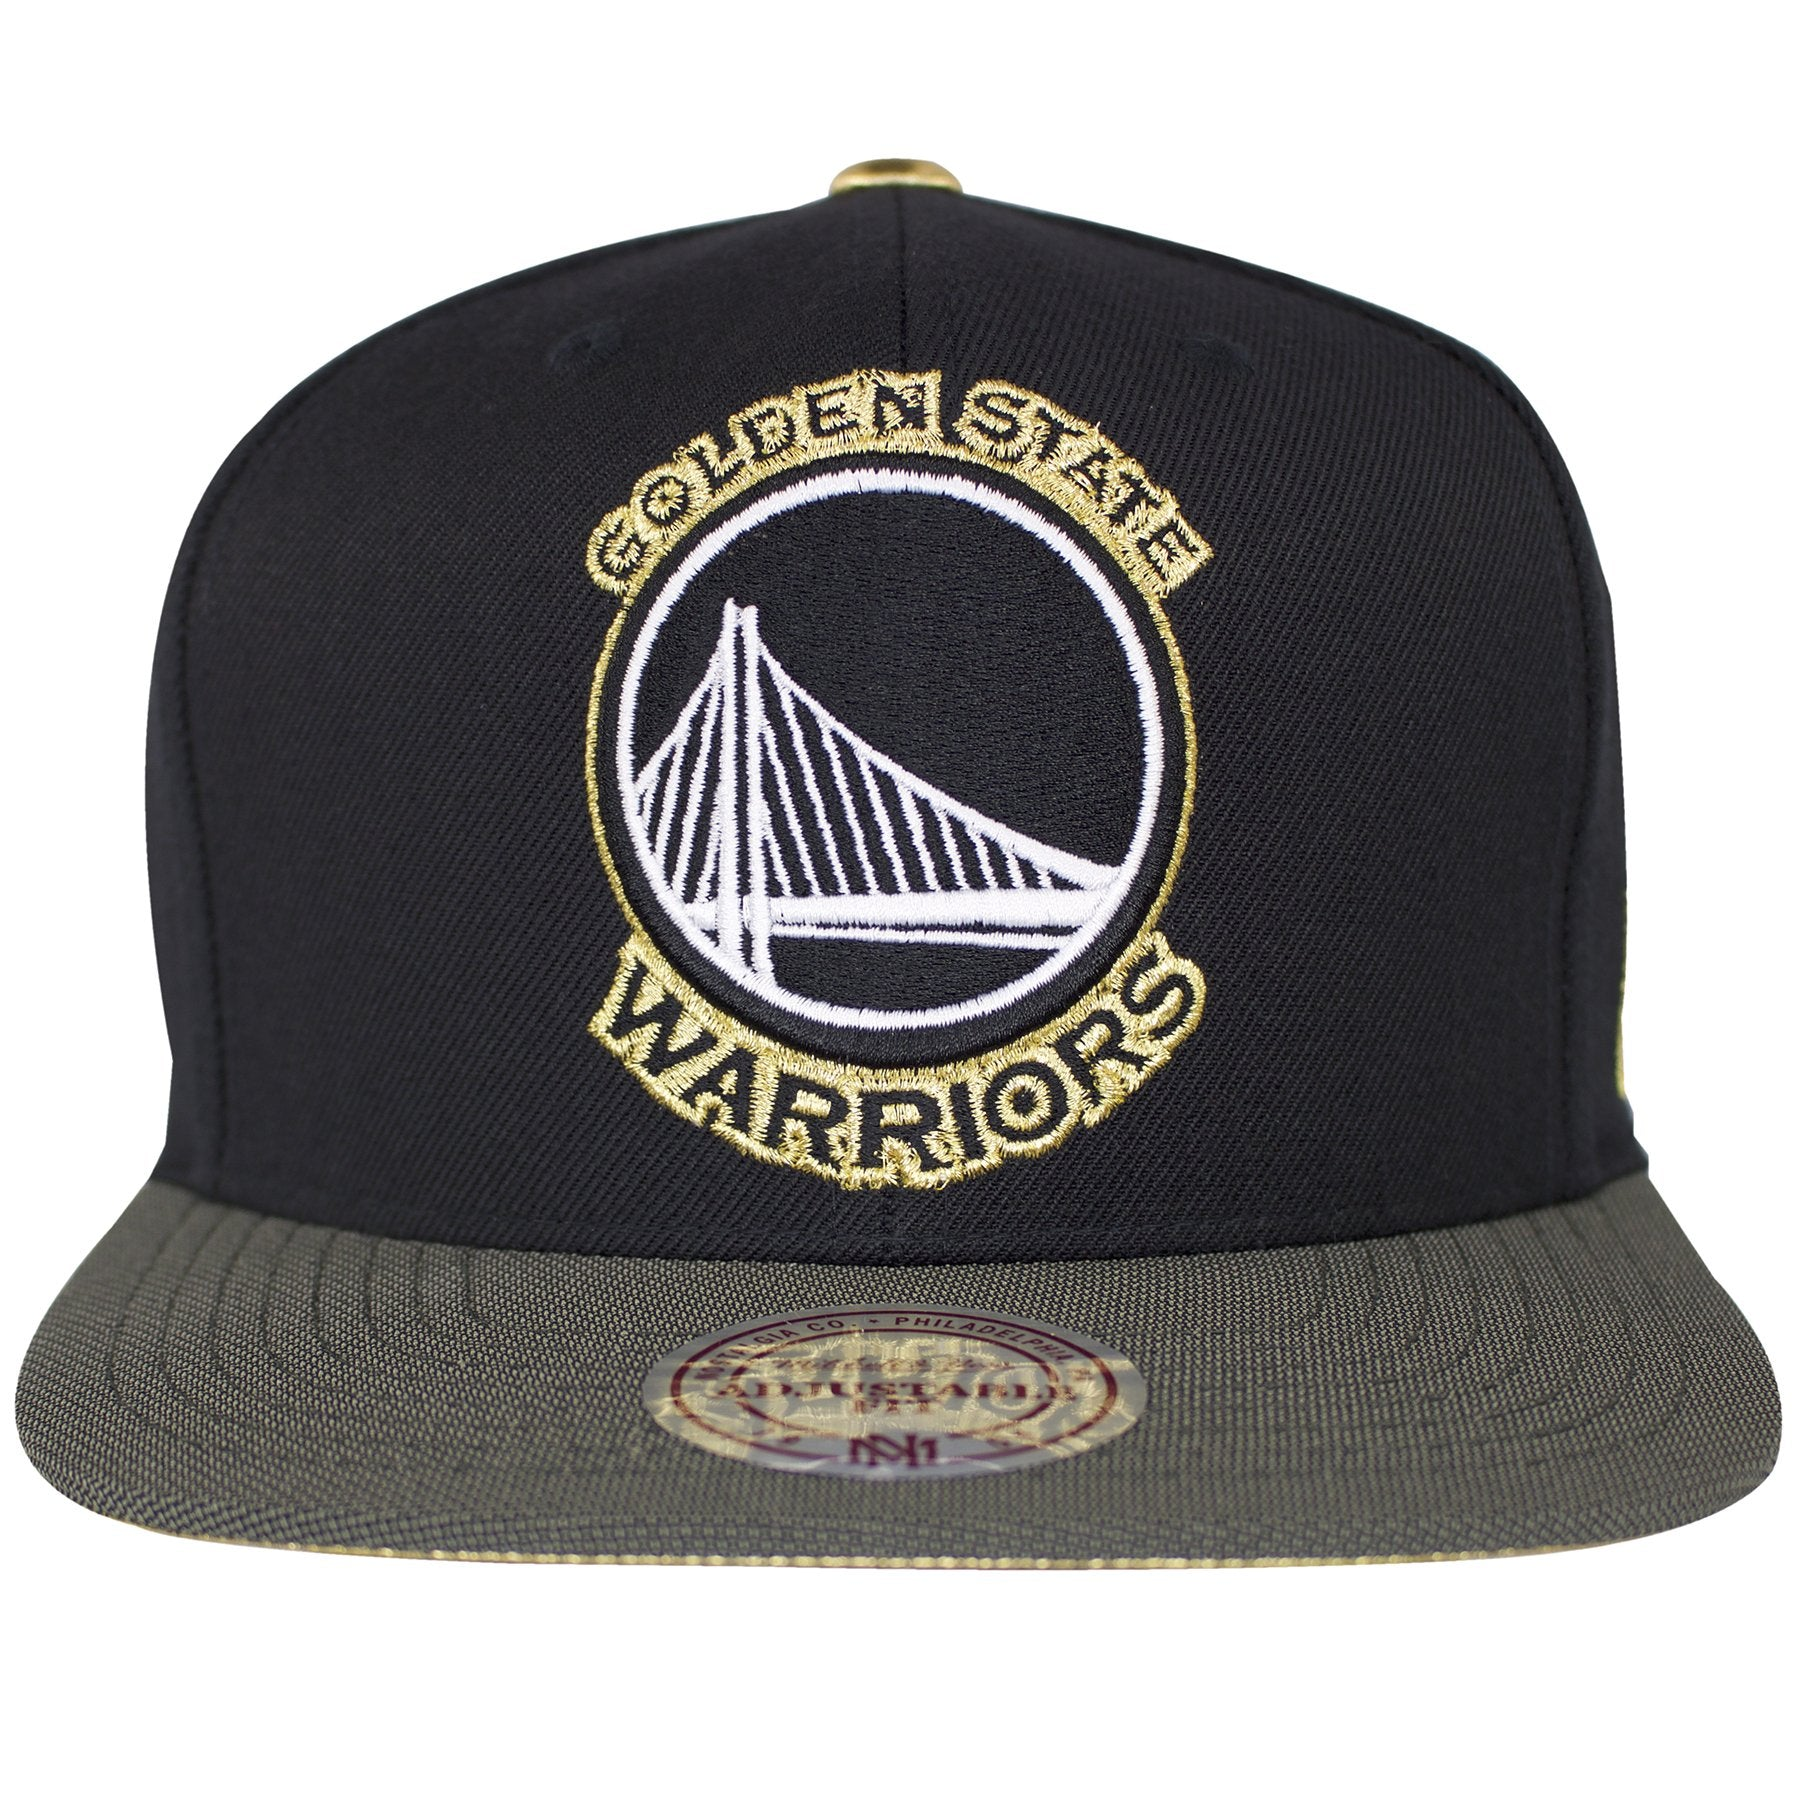 The Golden State Warriors Logo is embroidered on the front in white and  black with gold a92c53d4a